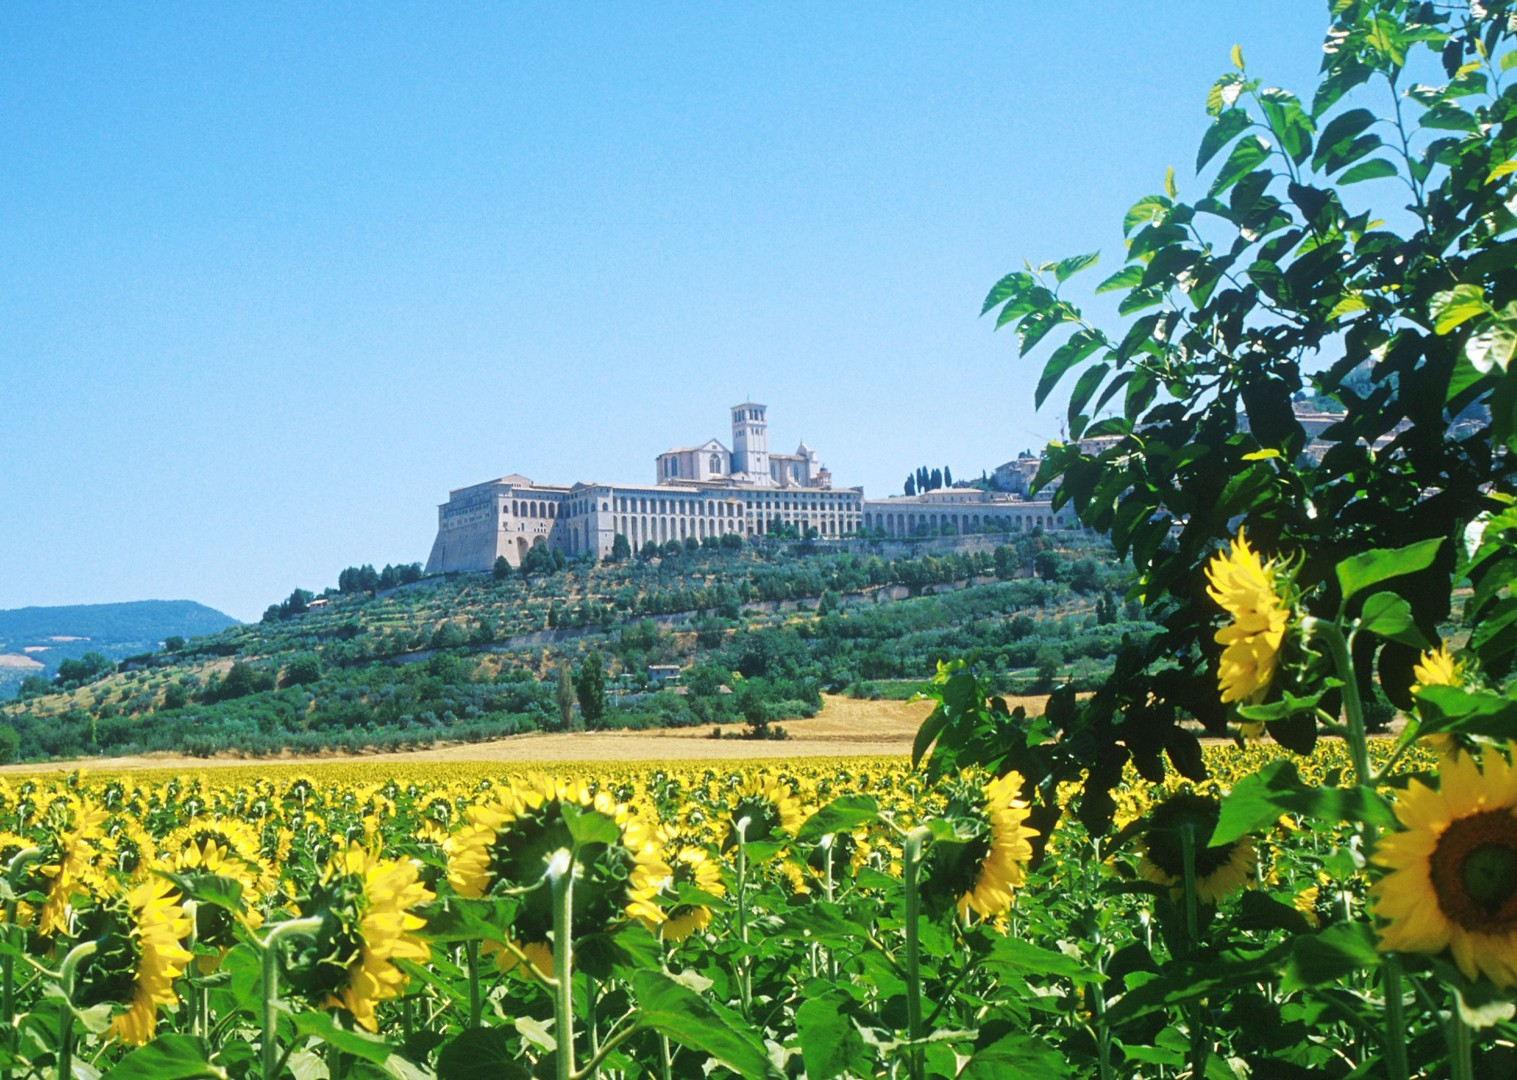 assisi-family-cycling-holiday-in-italy.jpg - Italy - Spirit of Umbria - Family Cycling